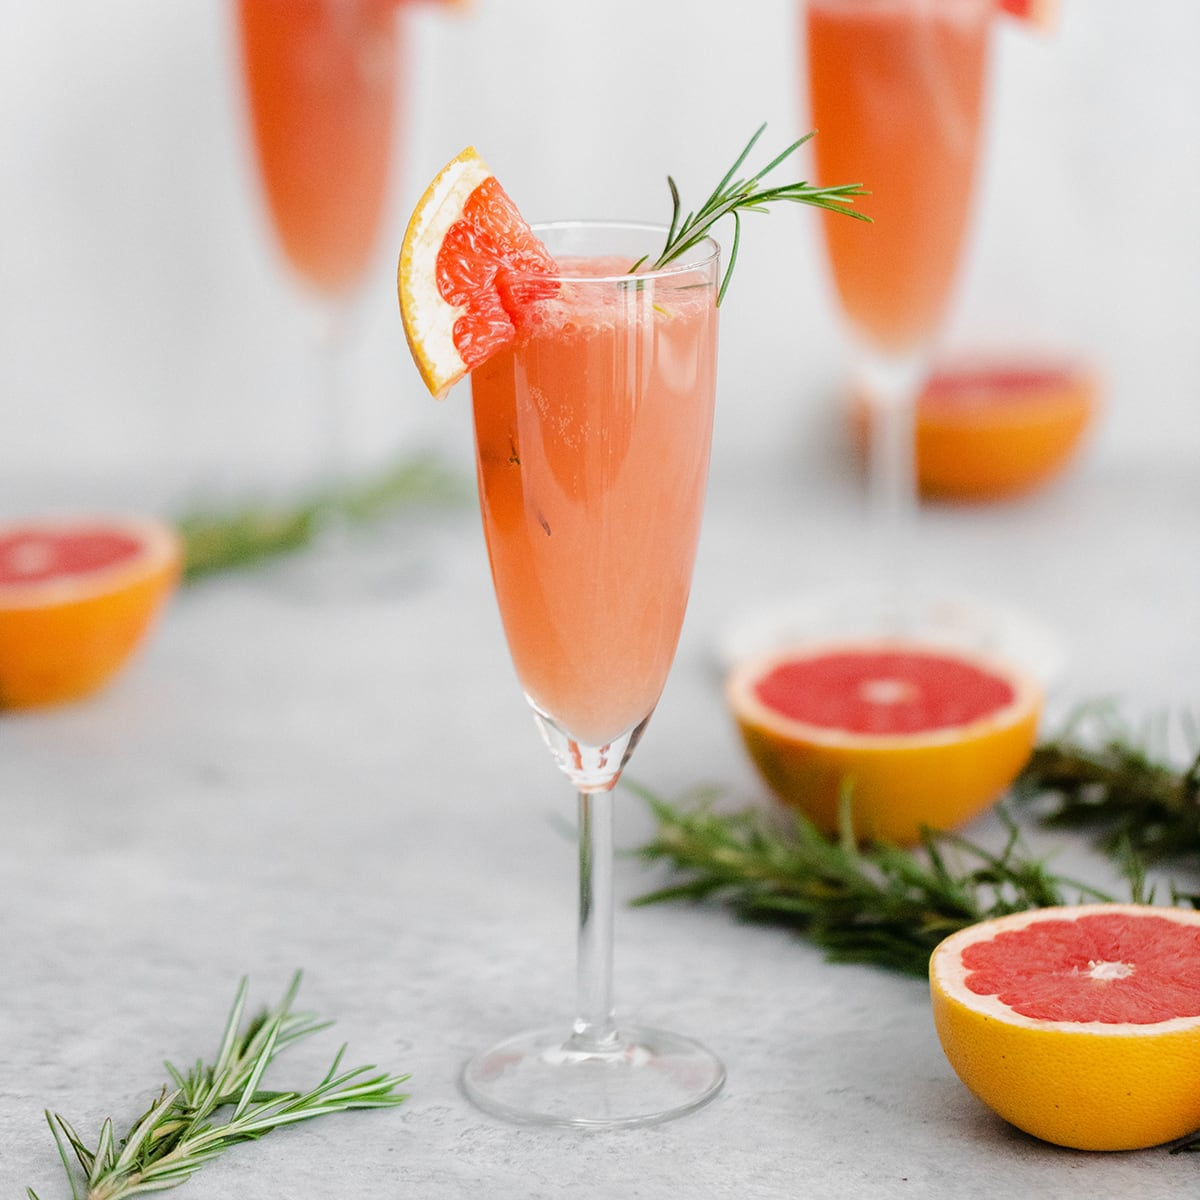 Grapefruit Mimosa in 3 flute glasses garnished with fresh rosemary and a quarter of a slice of grapefruit on the rim. Grapefruits as decoration in the background.